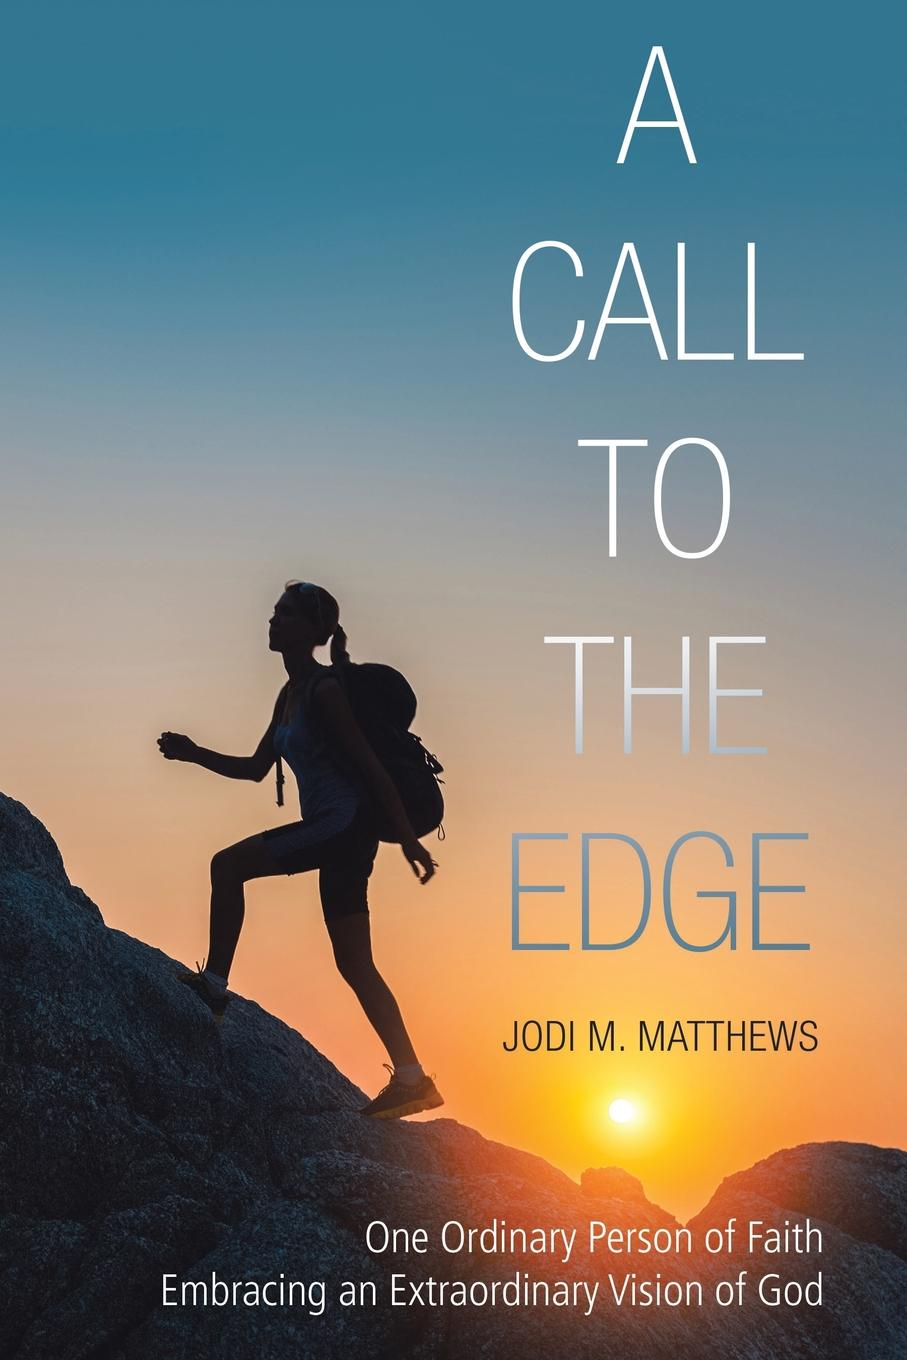 Jodi M. Matthews A Call to the Edge. One Ordinary Person of Faith Embracing an Extraordinary Vision of God j redmerski a the edge of never the edge of always 2 book collection